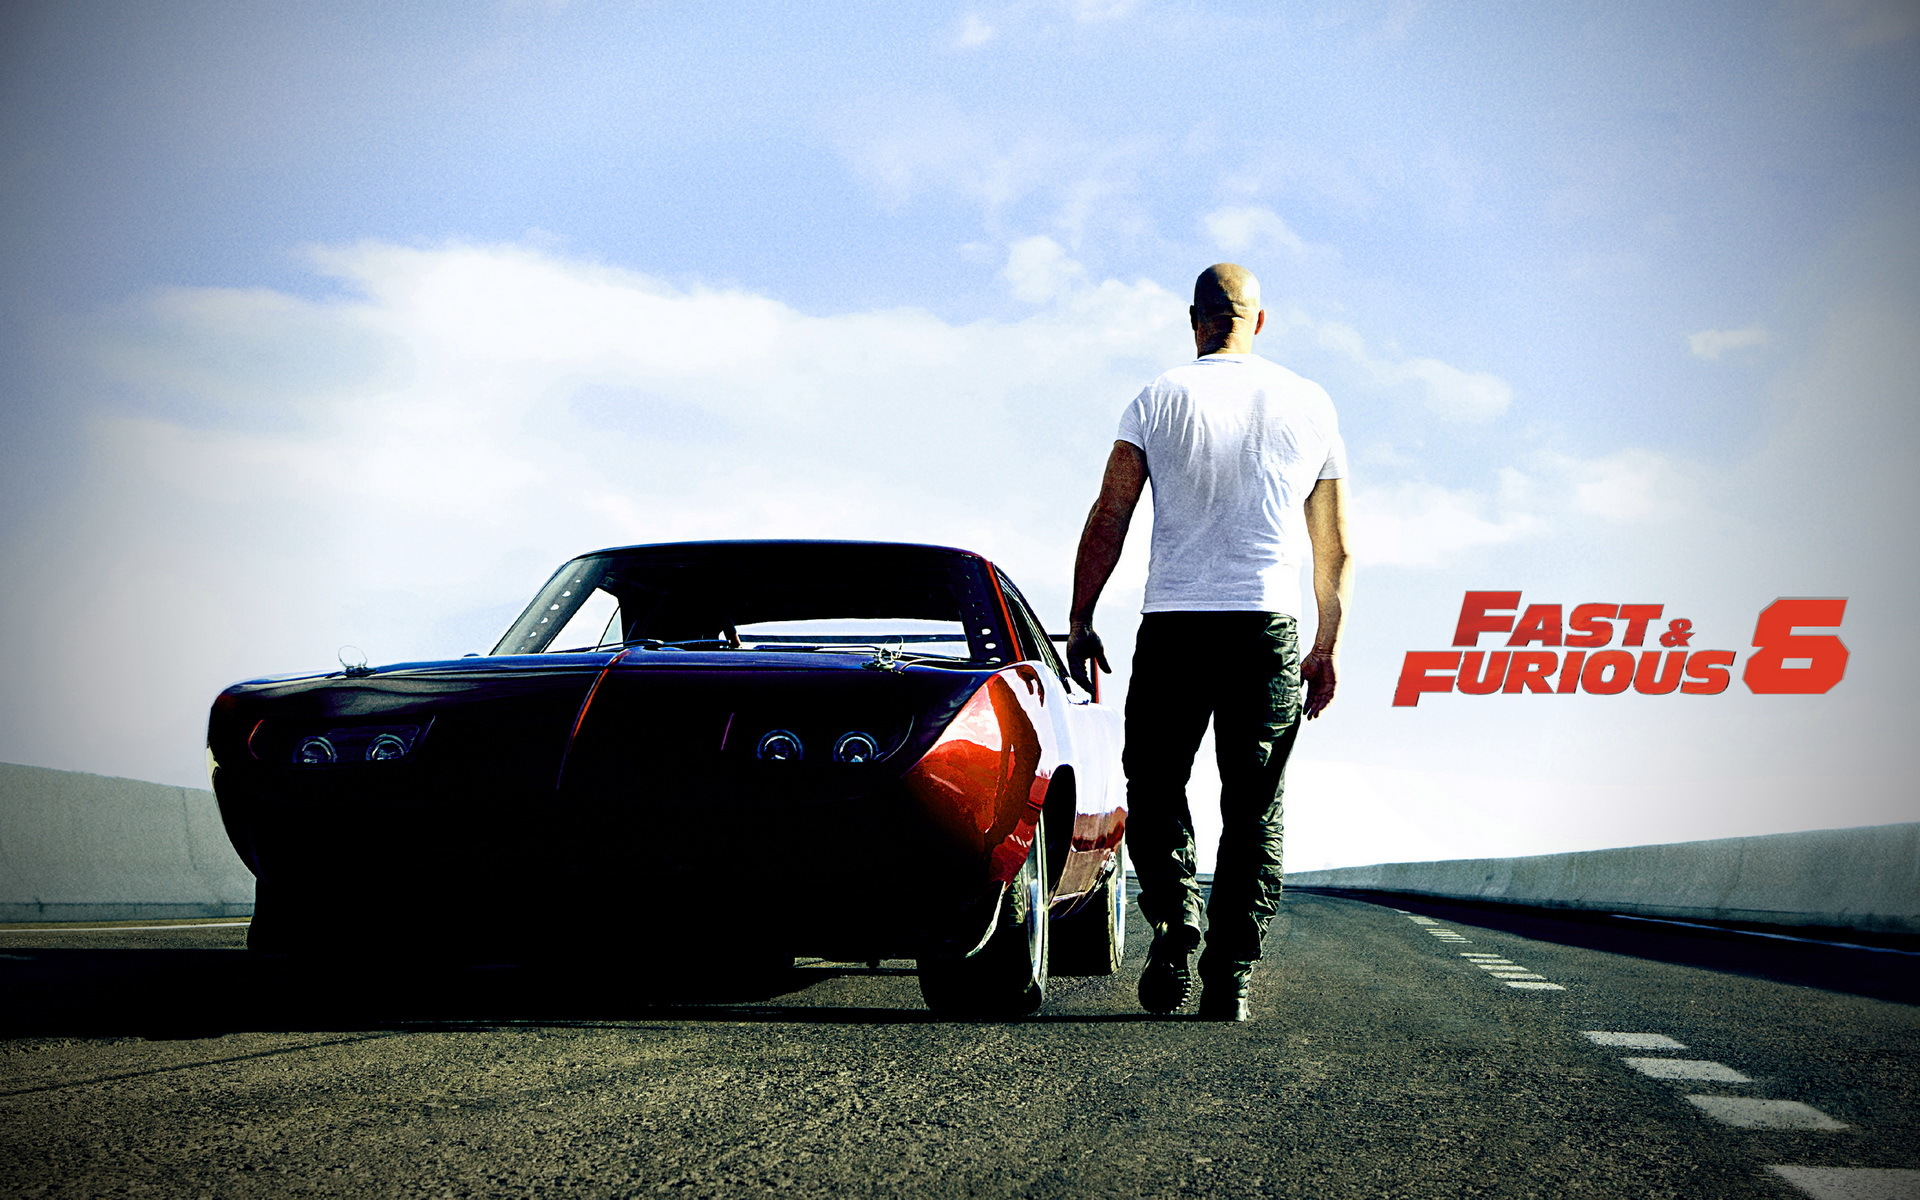 19572 download wallpaper Cinema, Auto, People, Actors, Men, Vin Diesel, Fast & Furious screensavers and pictures for free